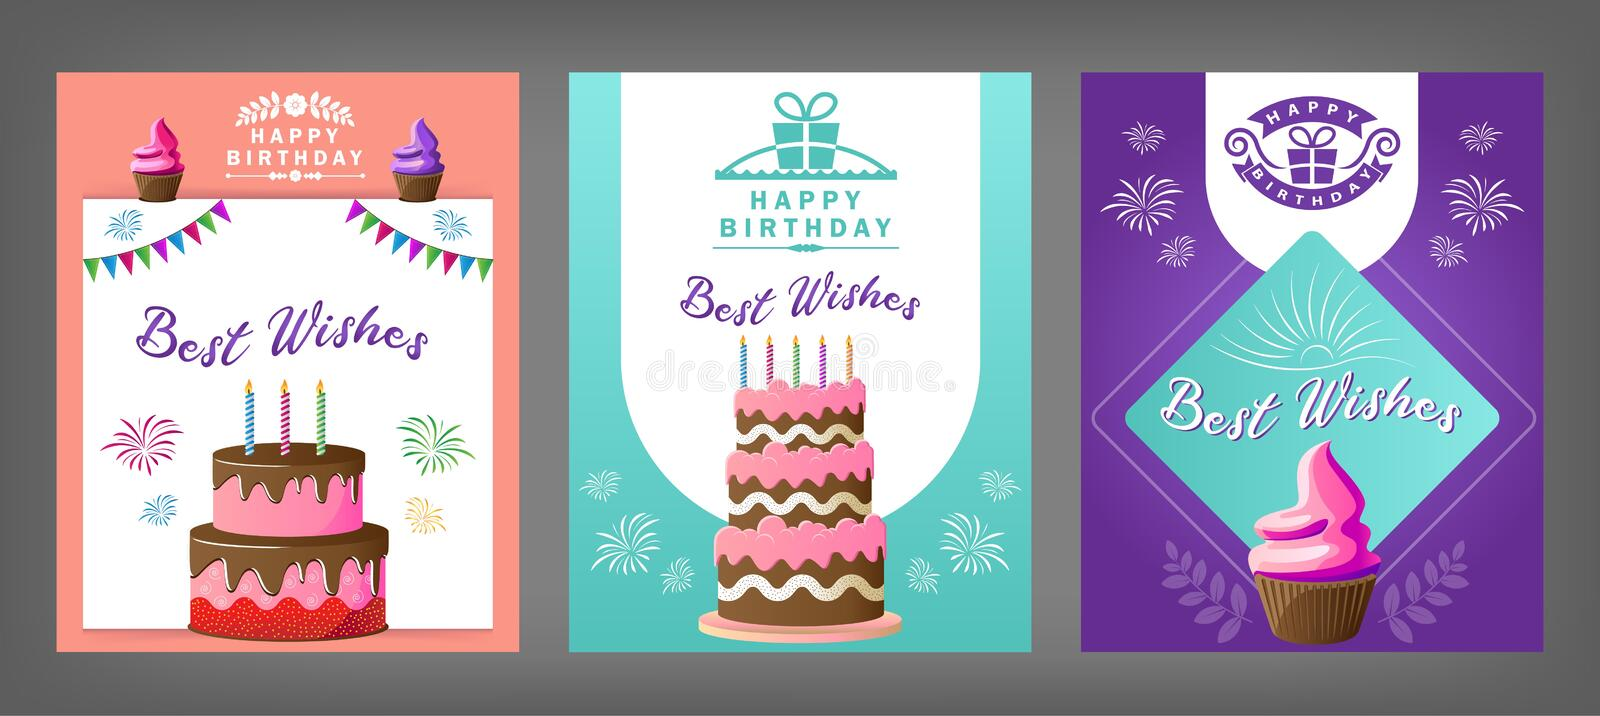 Best wishes birthday cards design layout options vector illustration